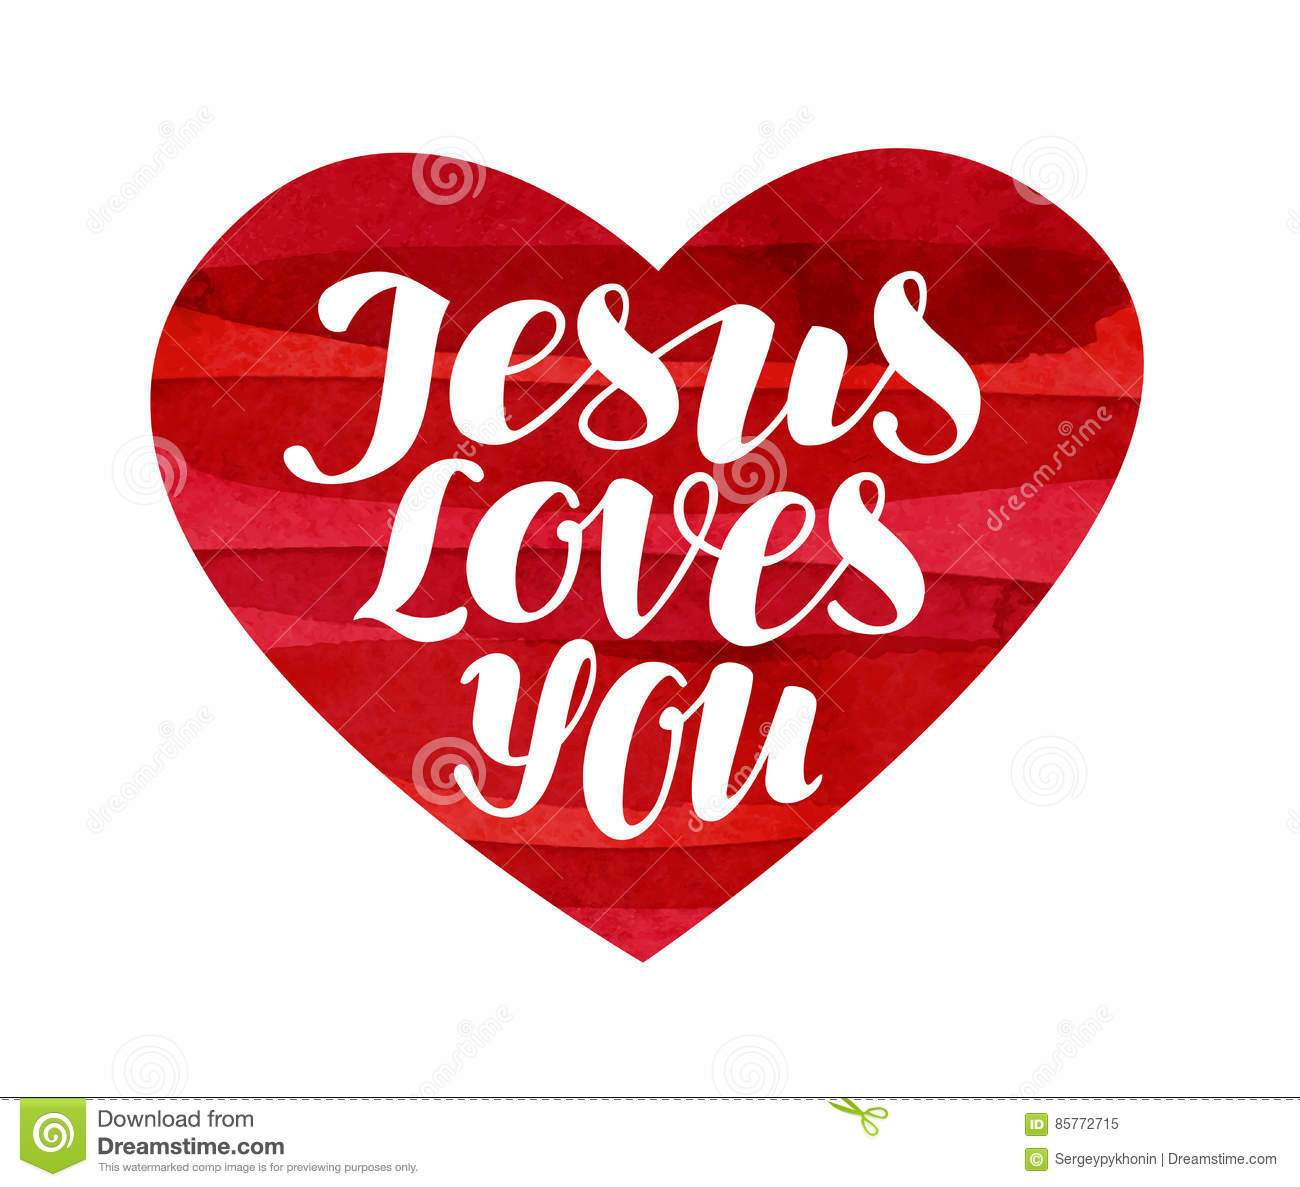 Jesus loves you clipart 3 » Clipart Portal.